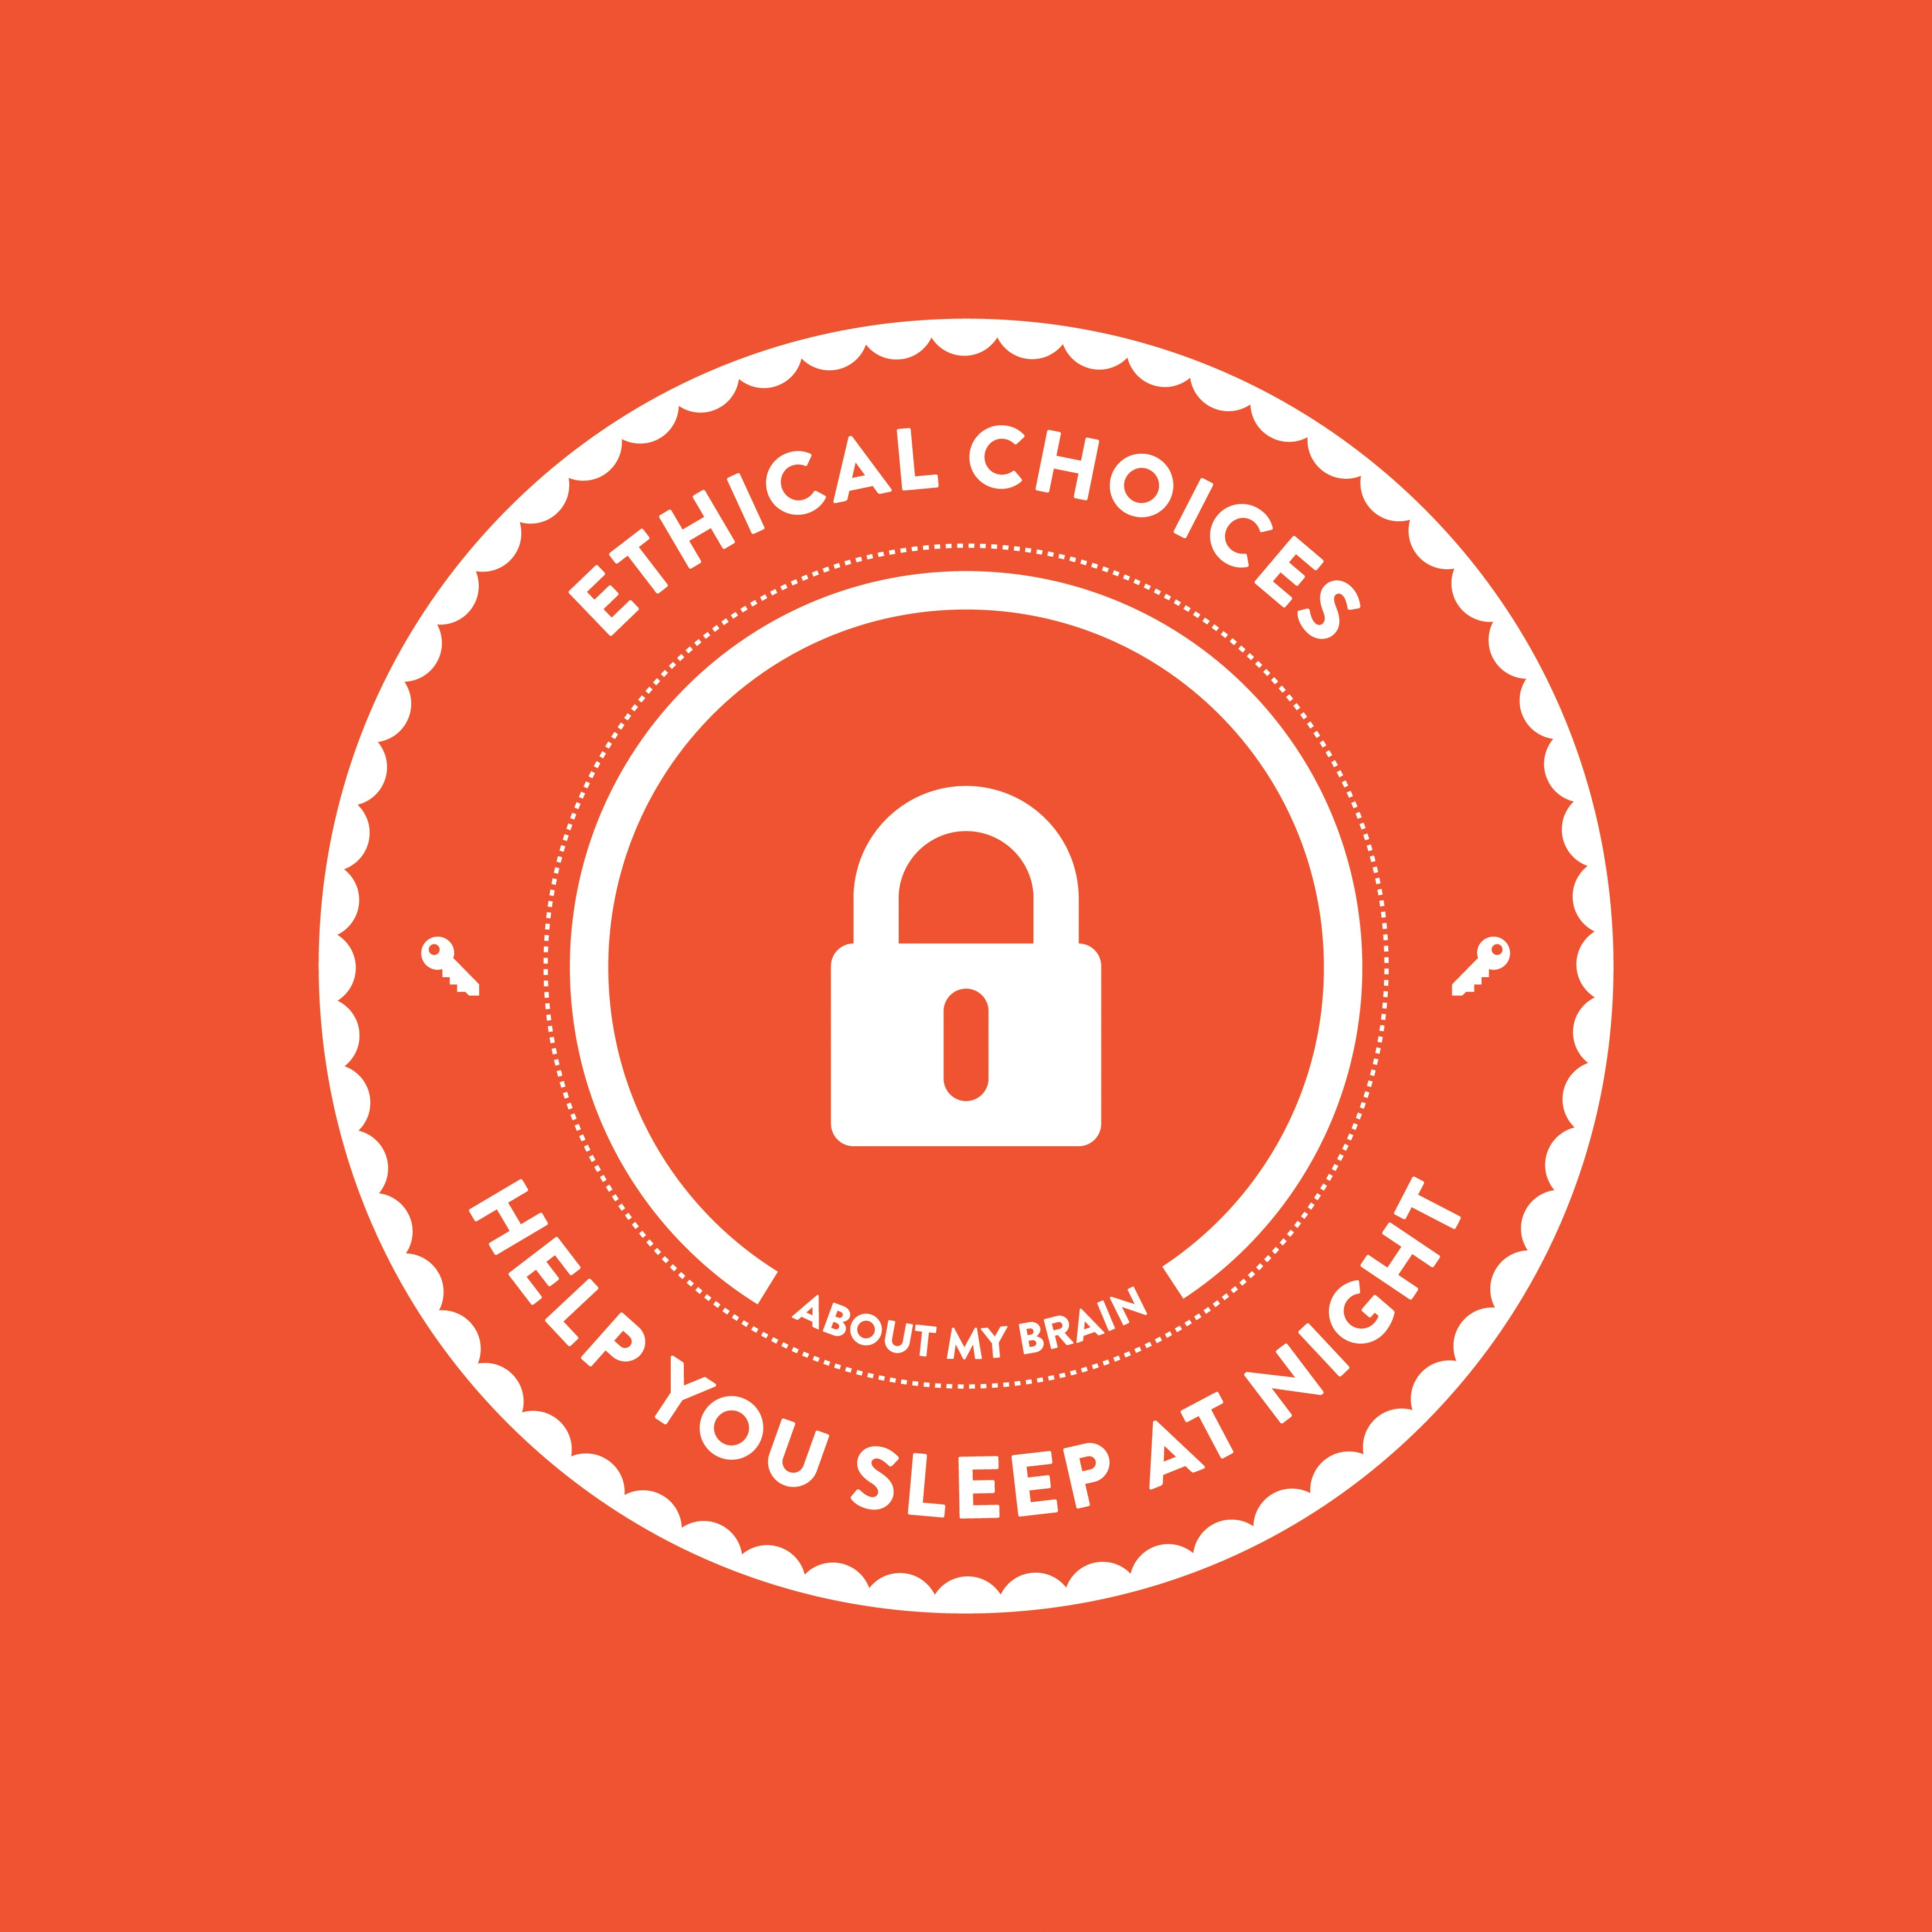 ethical choices help you sleep at night